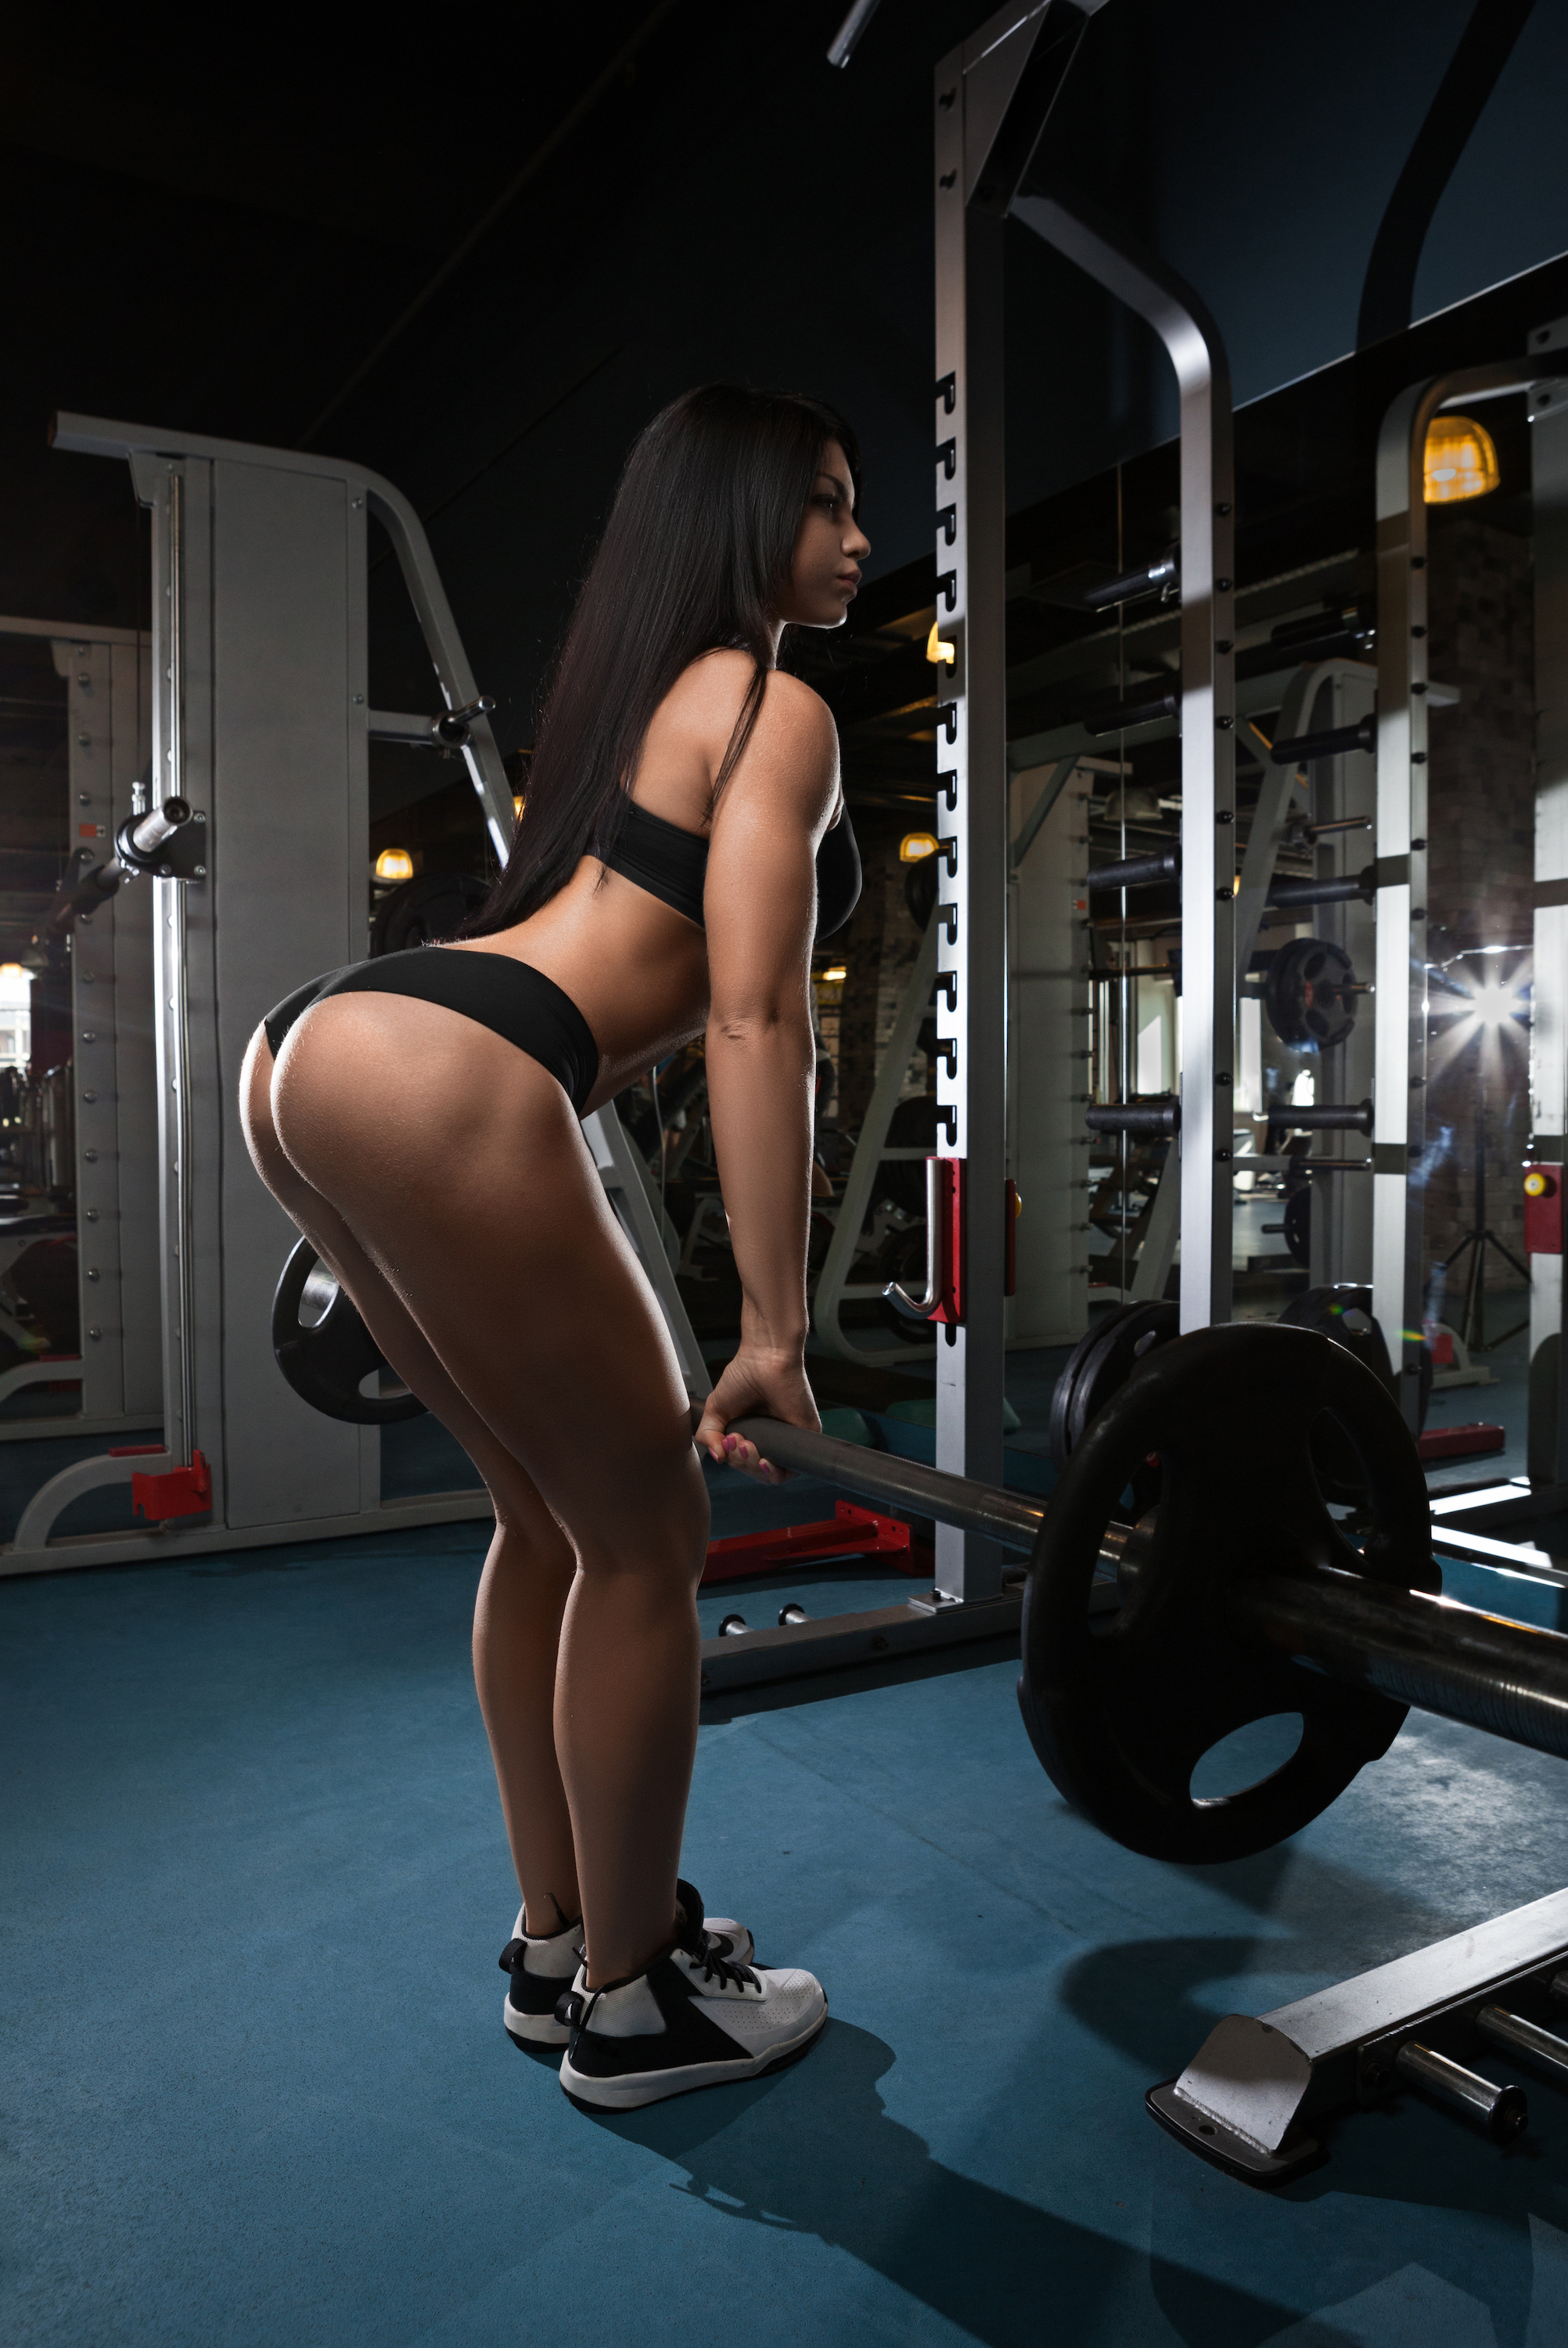 People 2004x3000 fitness model women women indoors glutes dark hair exercise barbell sports bra thong sneakers gyms side view